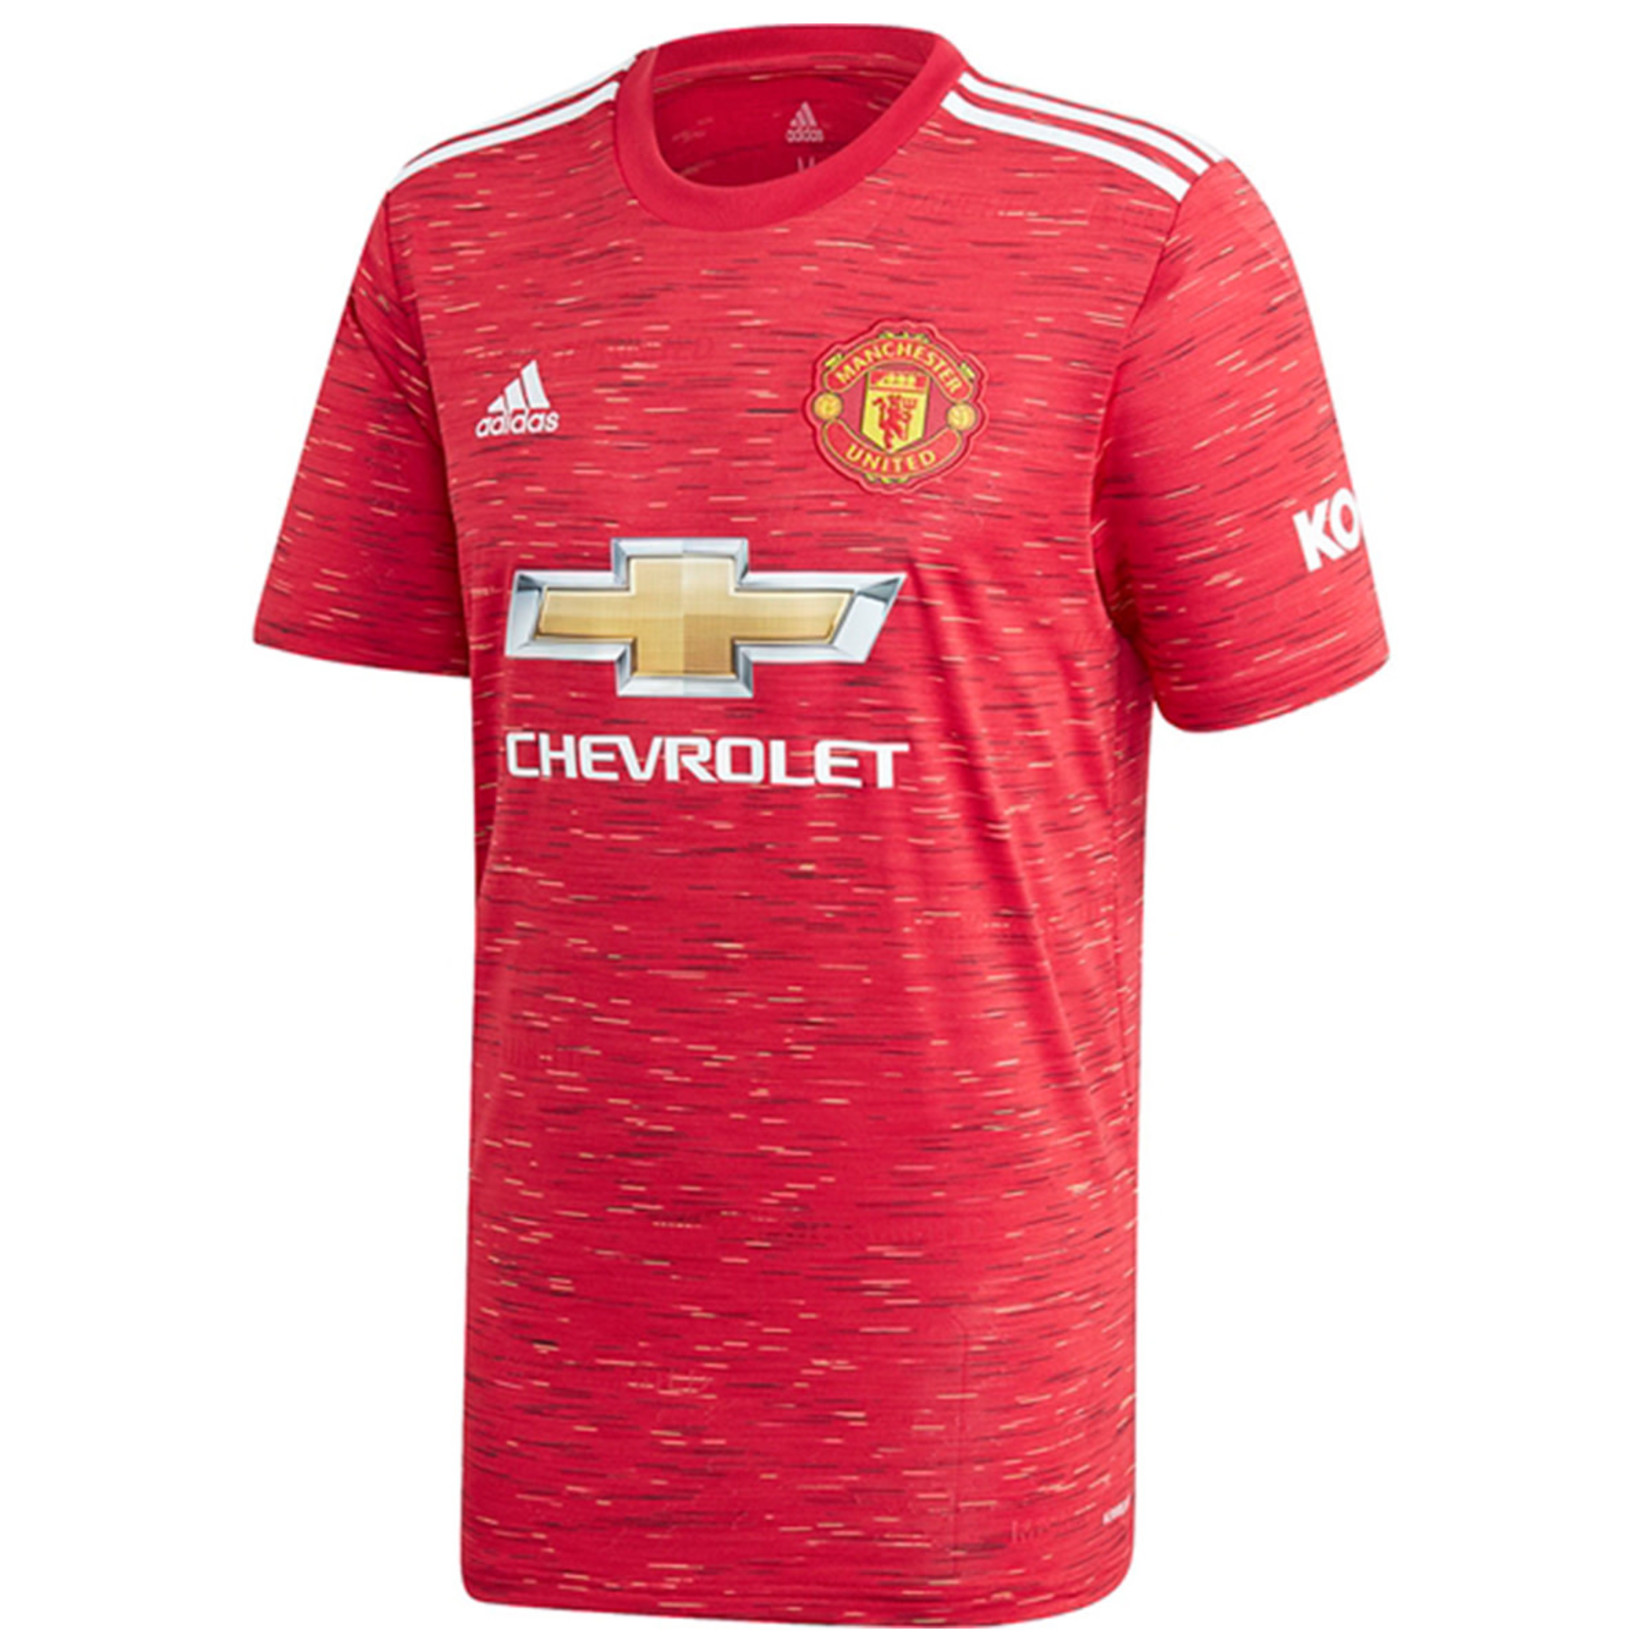 ADIDAS MANCHESTER UNITED 20/21 HOME JERSEY YOUTH (RED)